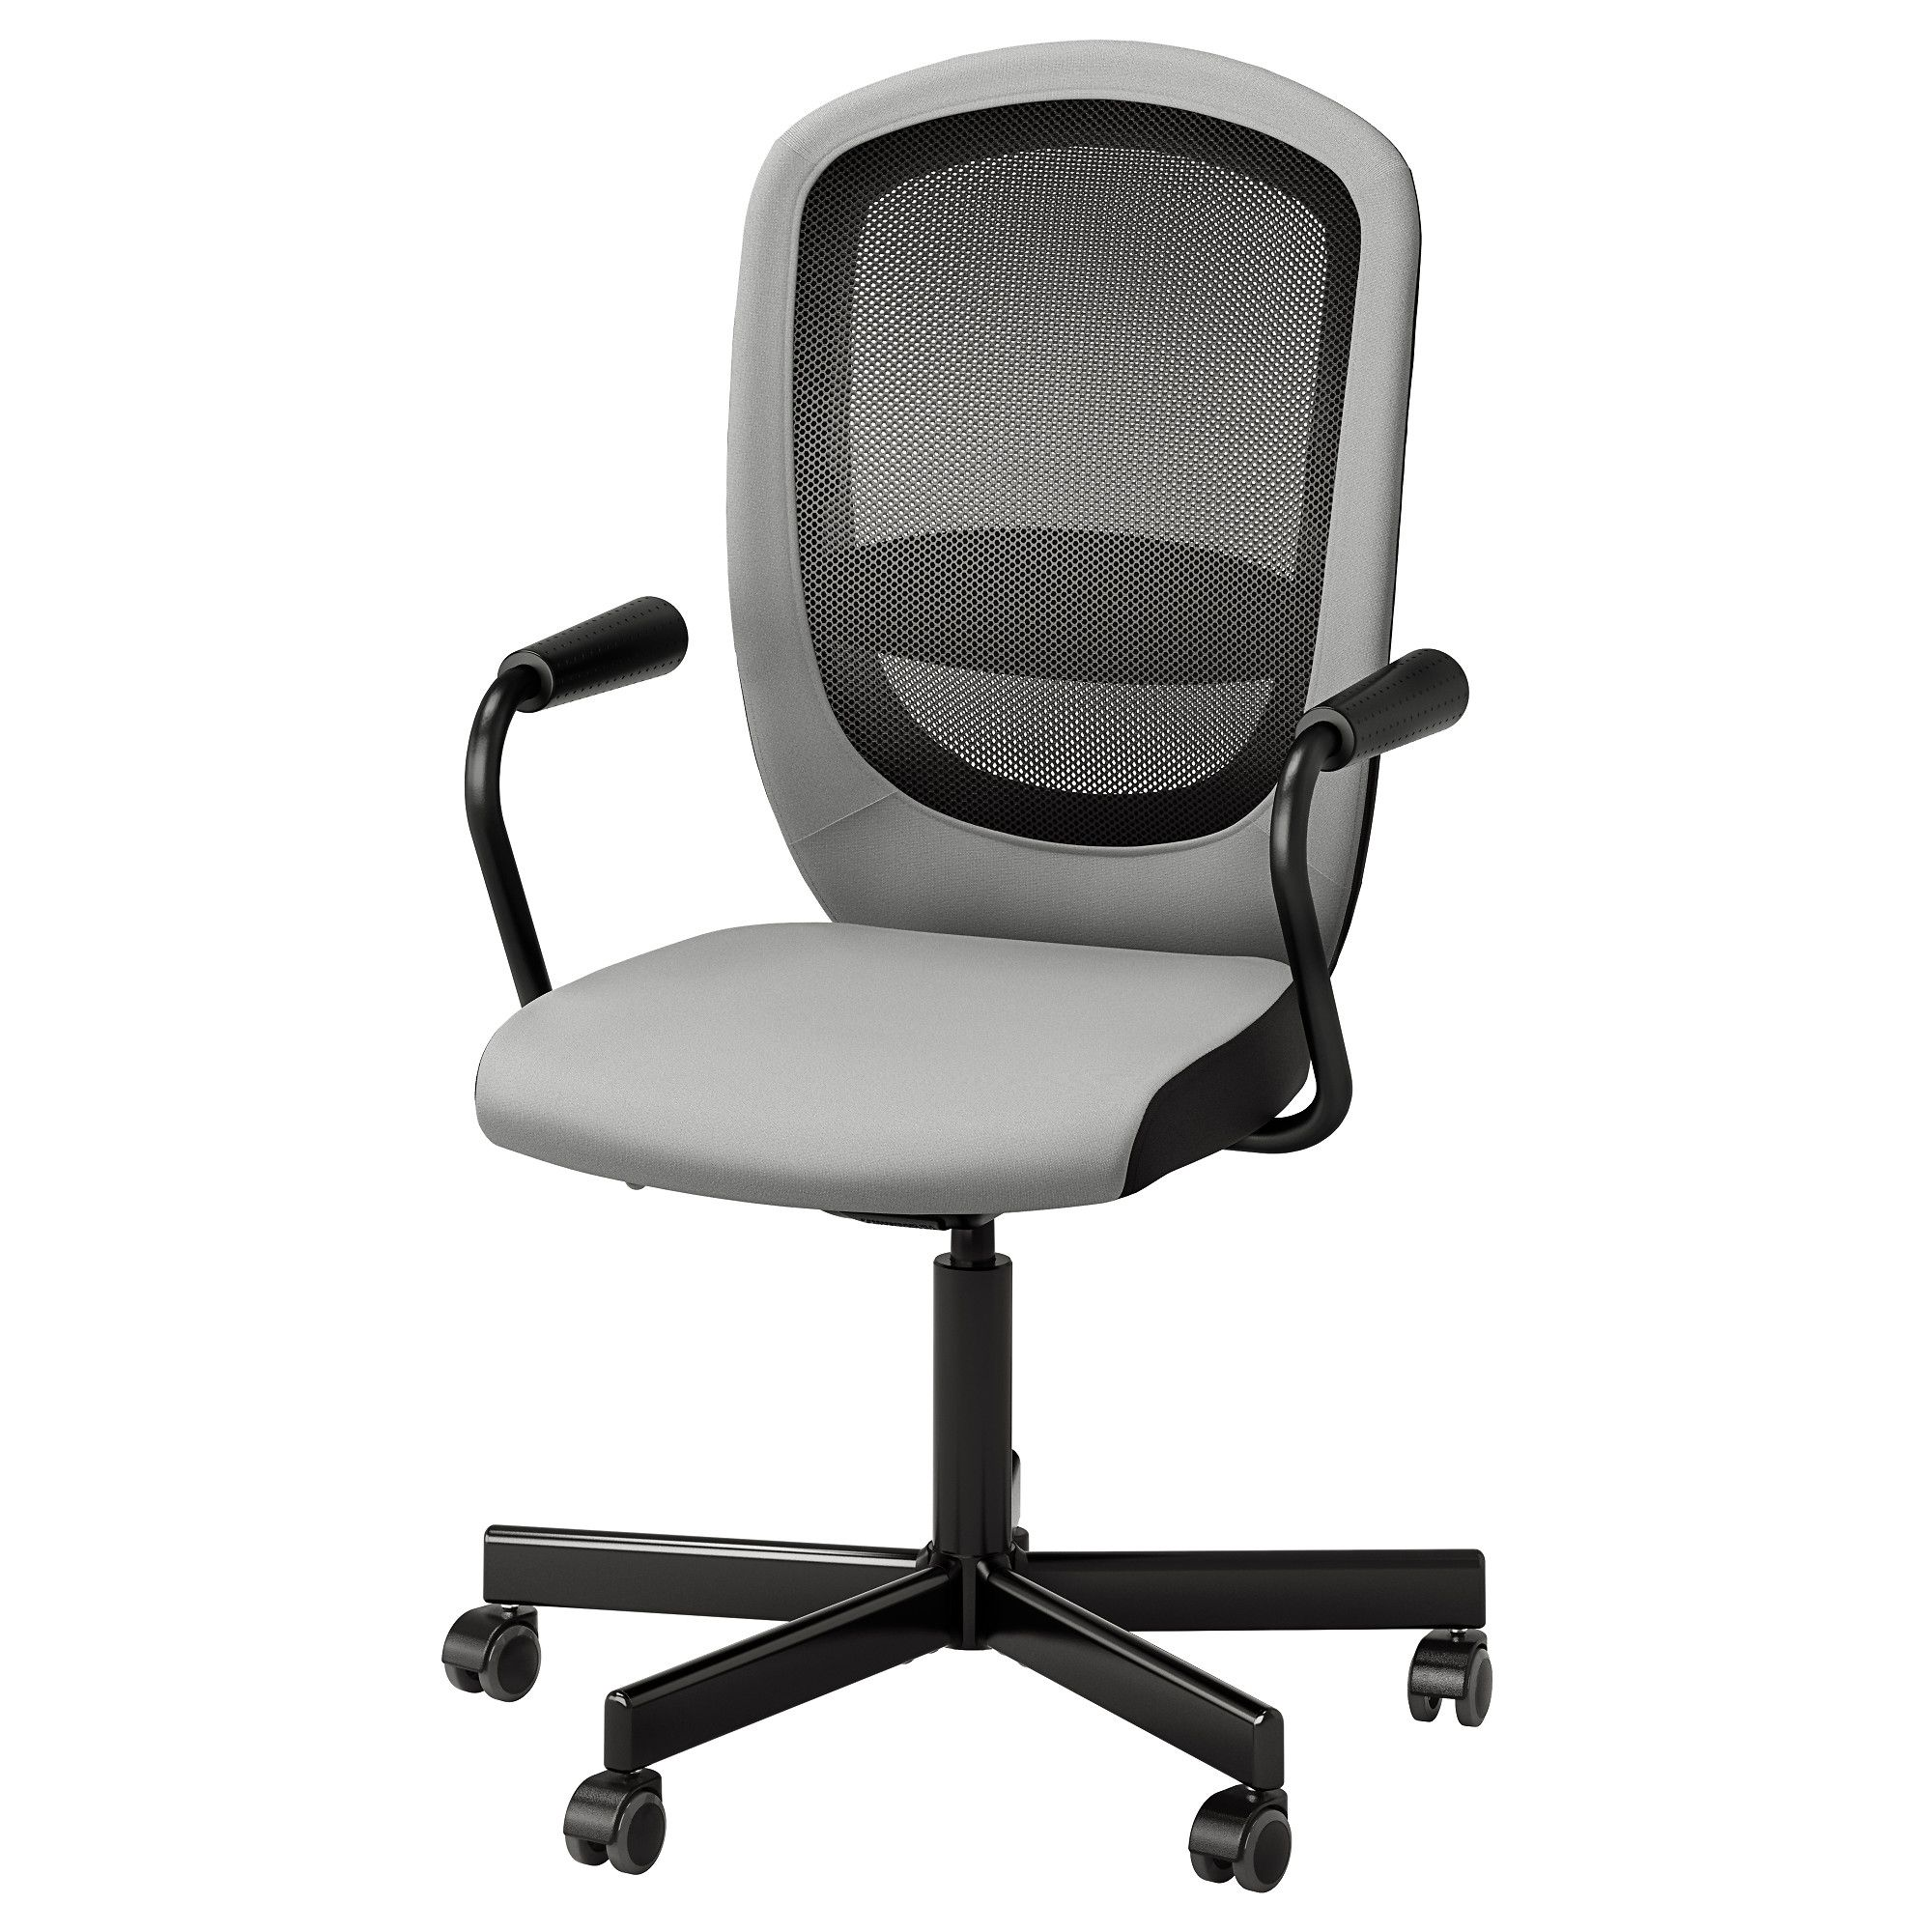 Merveilleux IKEA FLINTAN/NOMINELL Swivel Chair With Armrests Relieves Strain On Your  Arms And Shoulders.